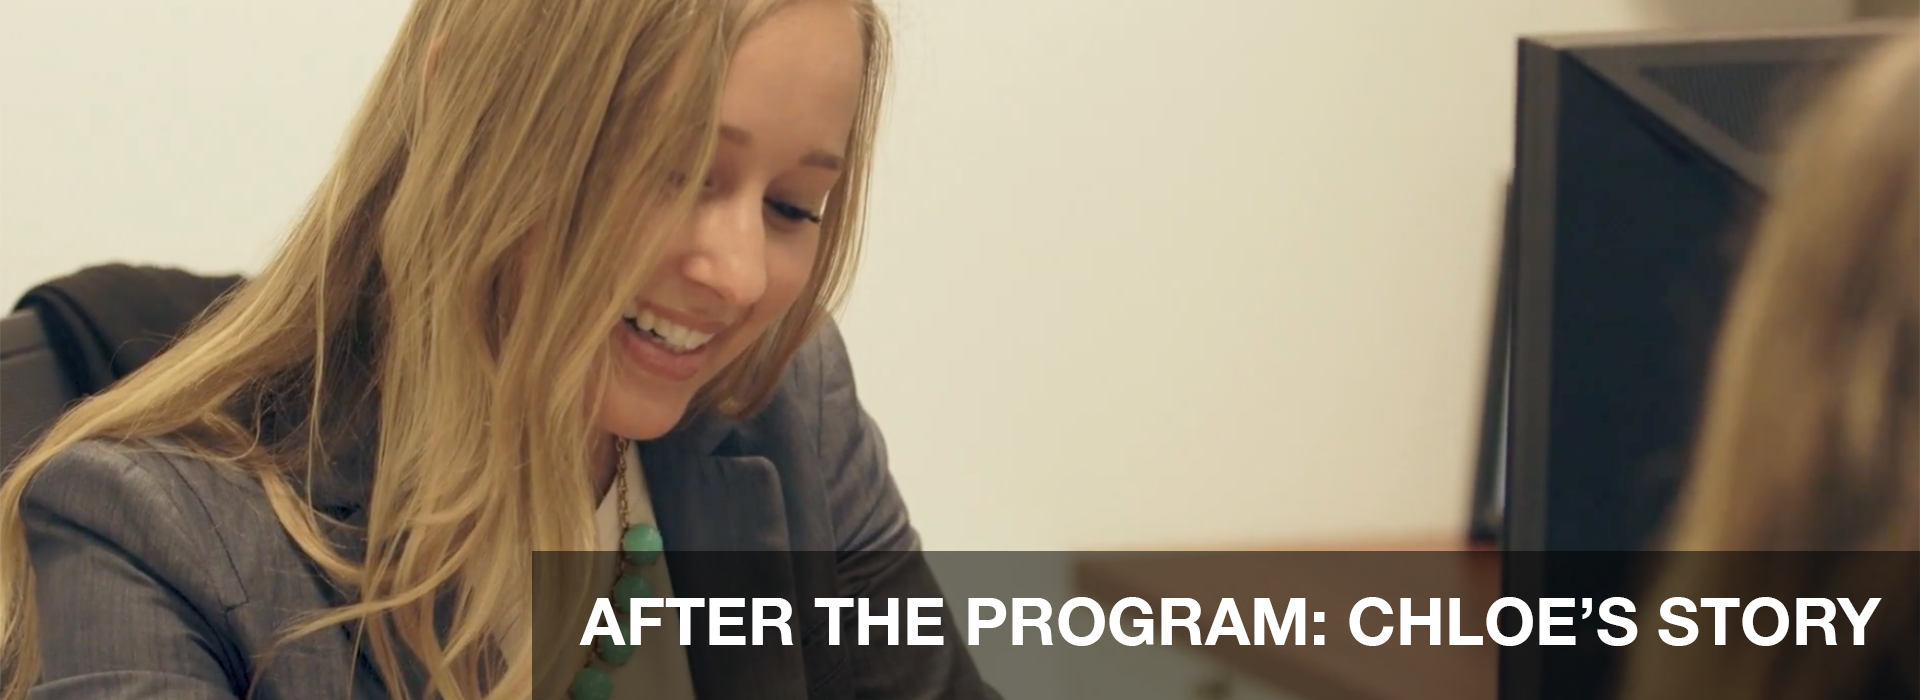 AFTER THE PROGRAM: CHLOE'S STORY